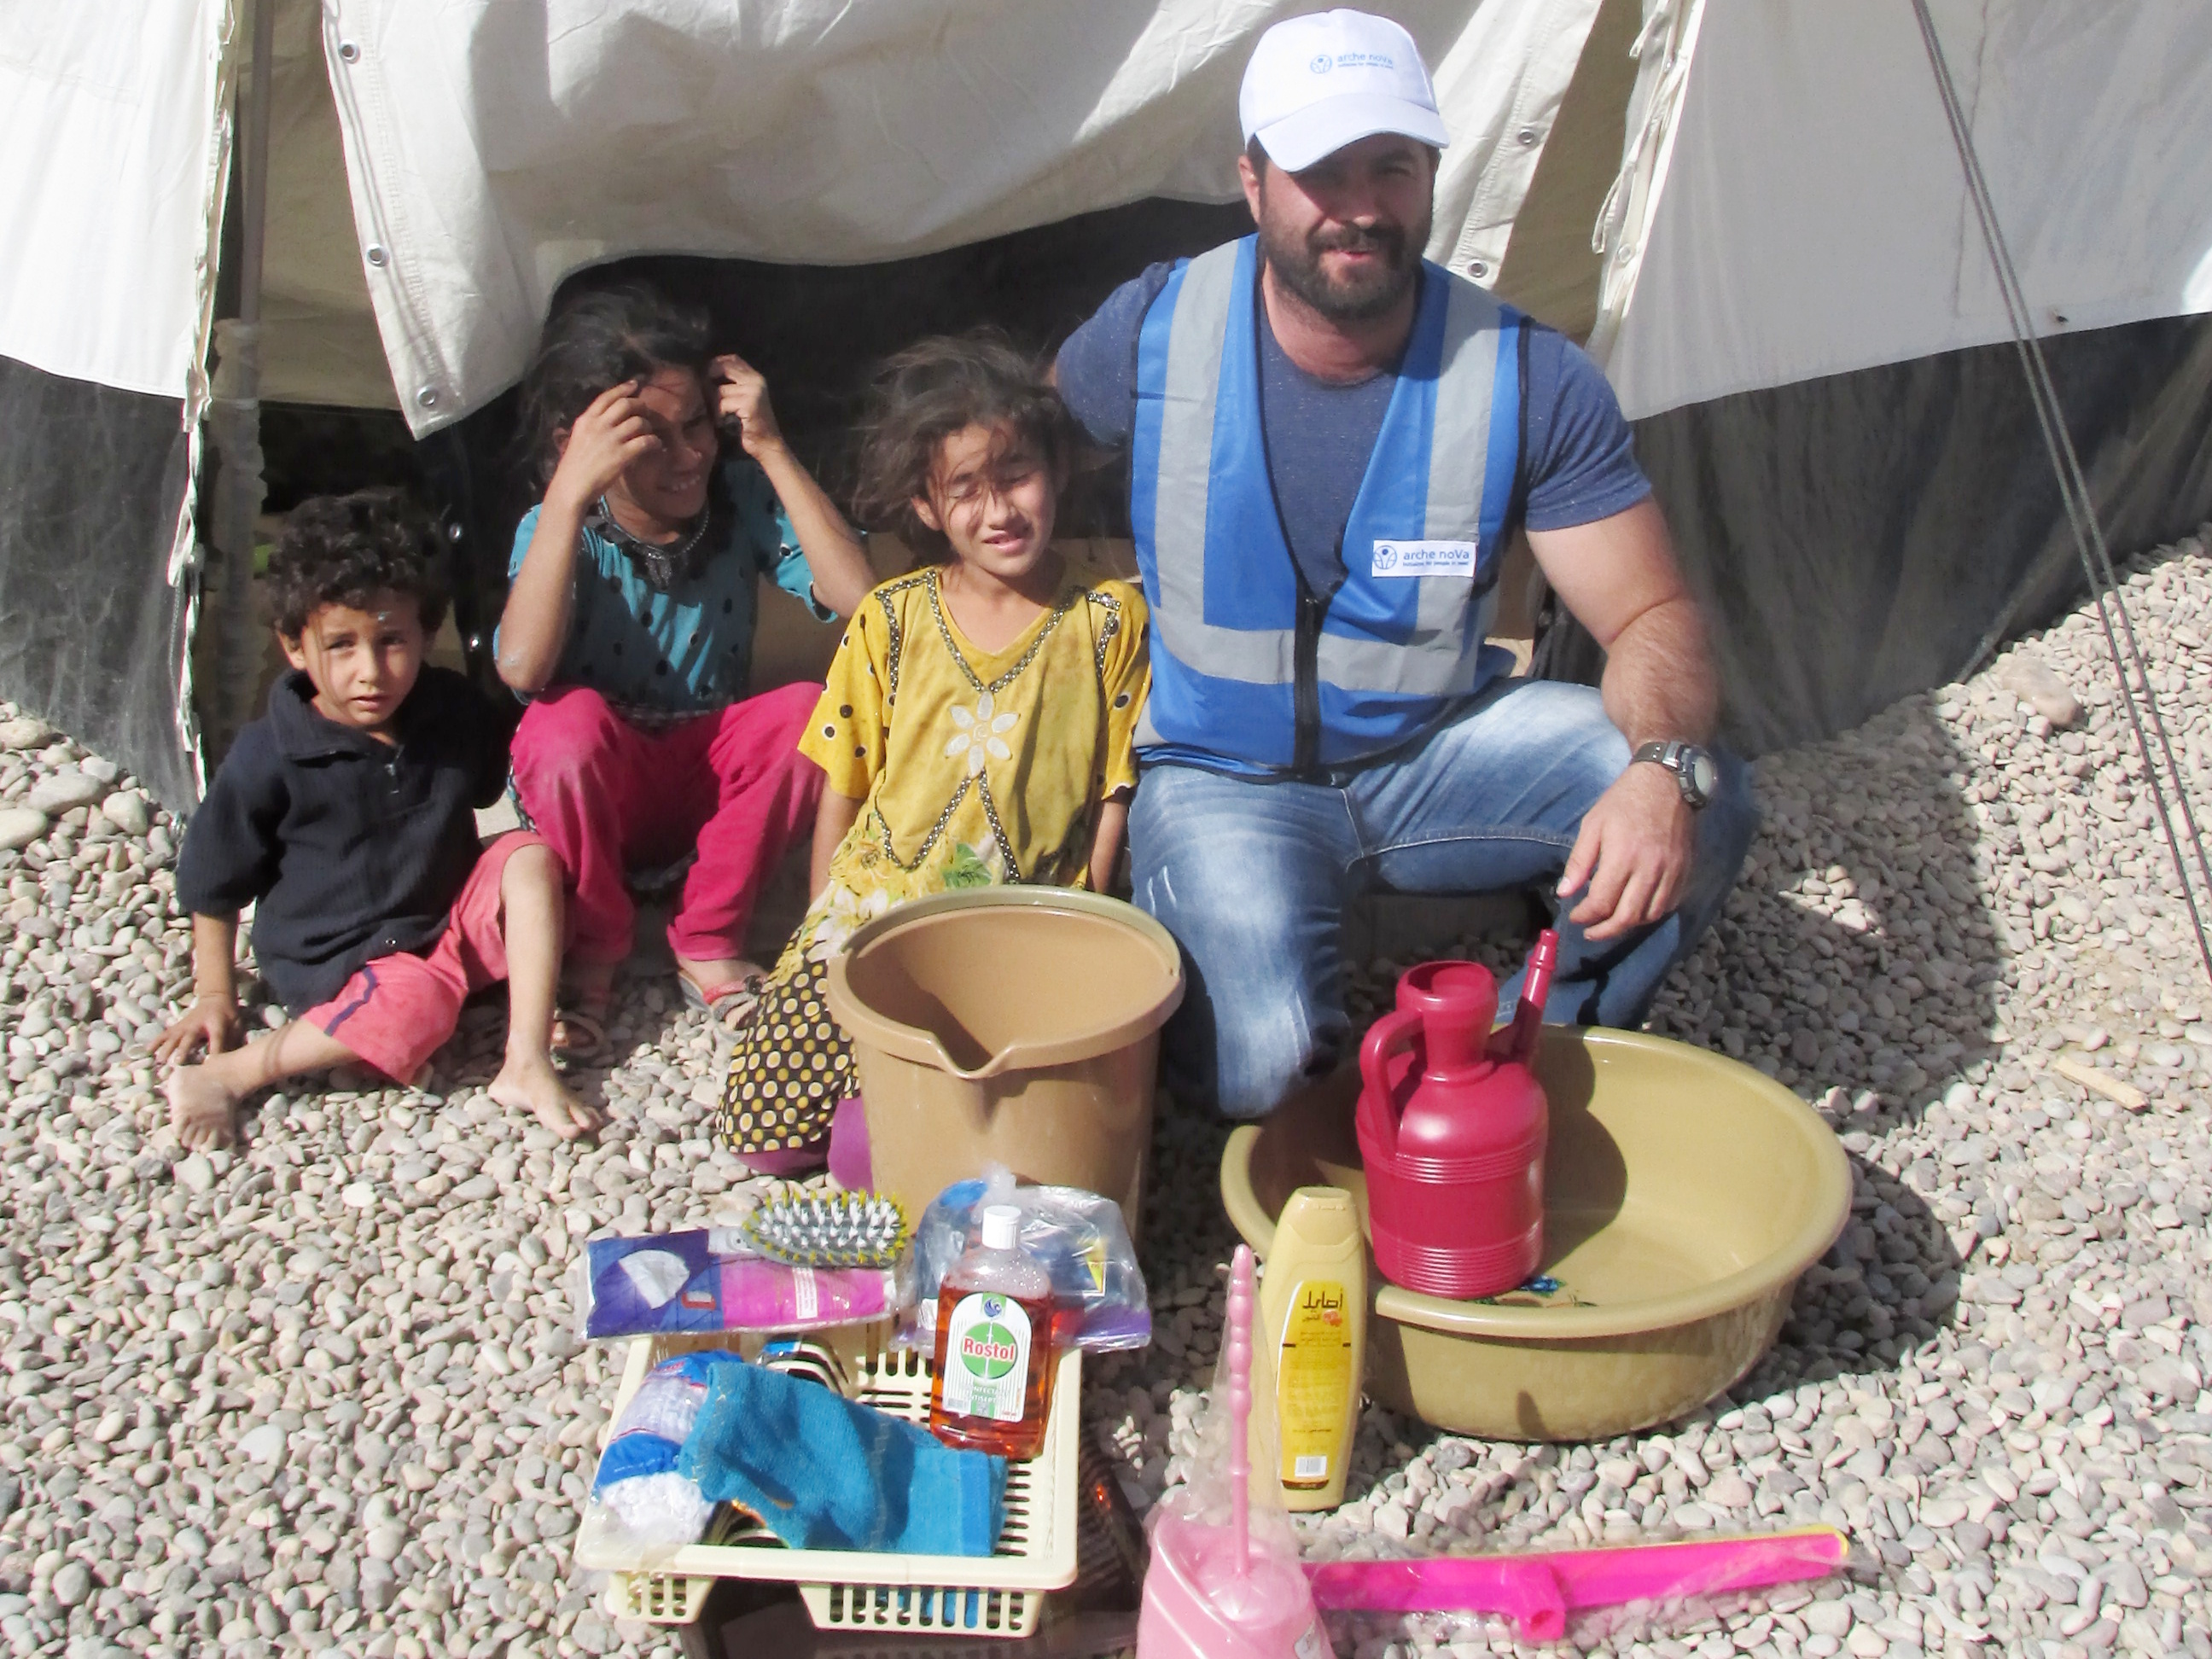 arche noVa member with hygiene kit for a family in front of a tent.